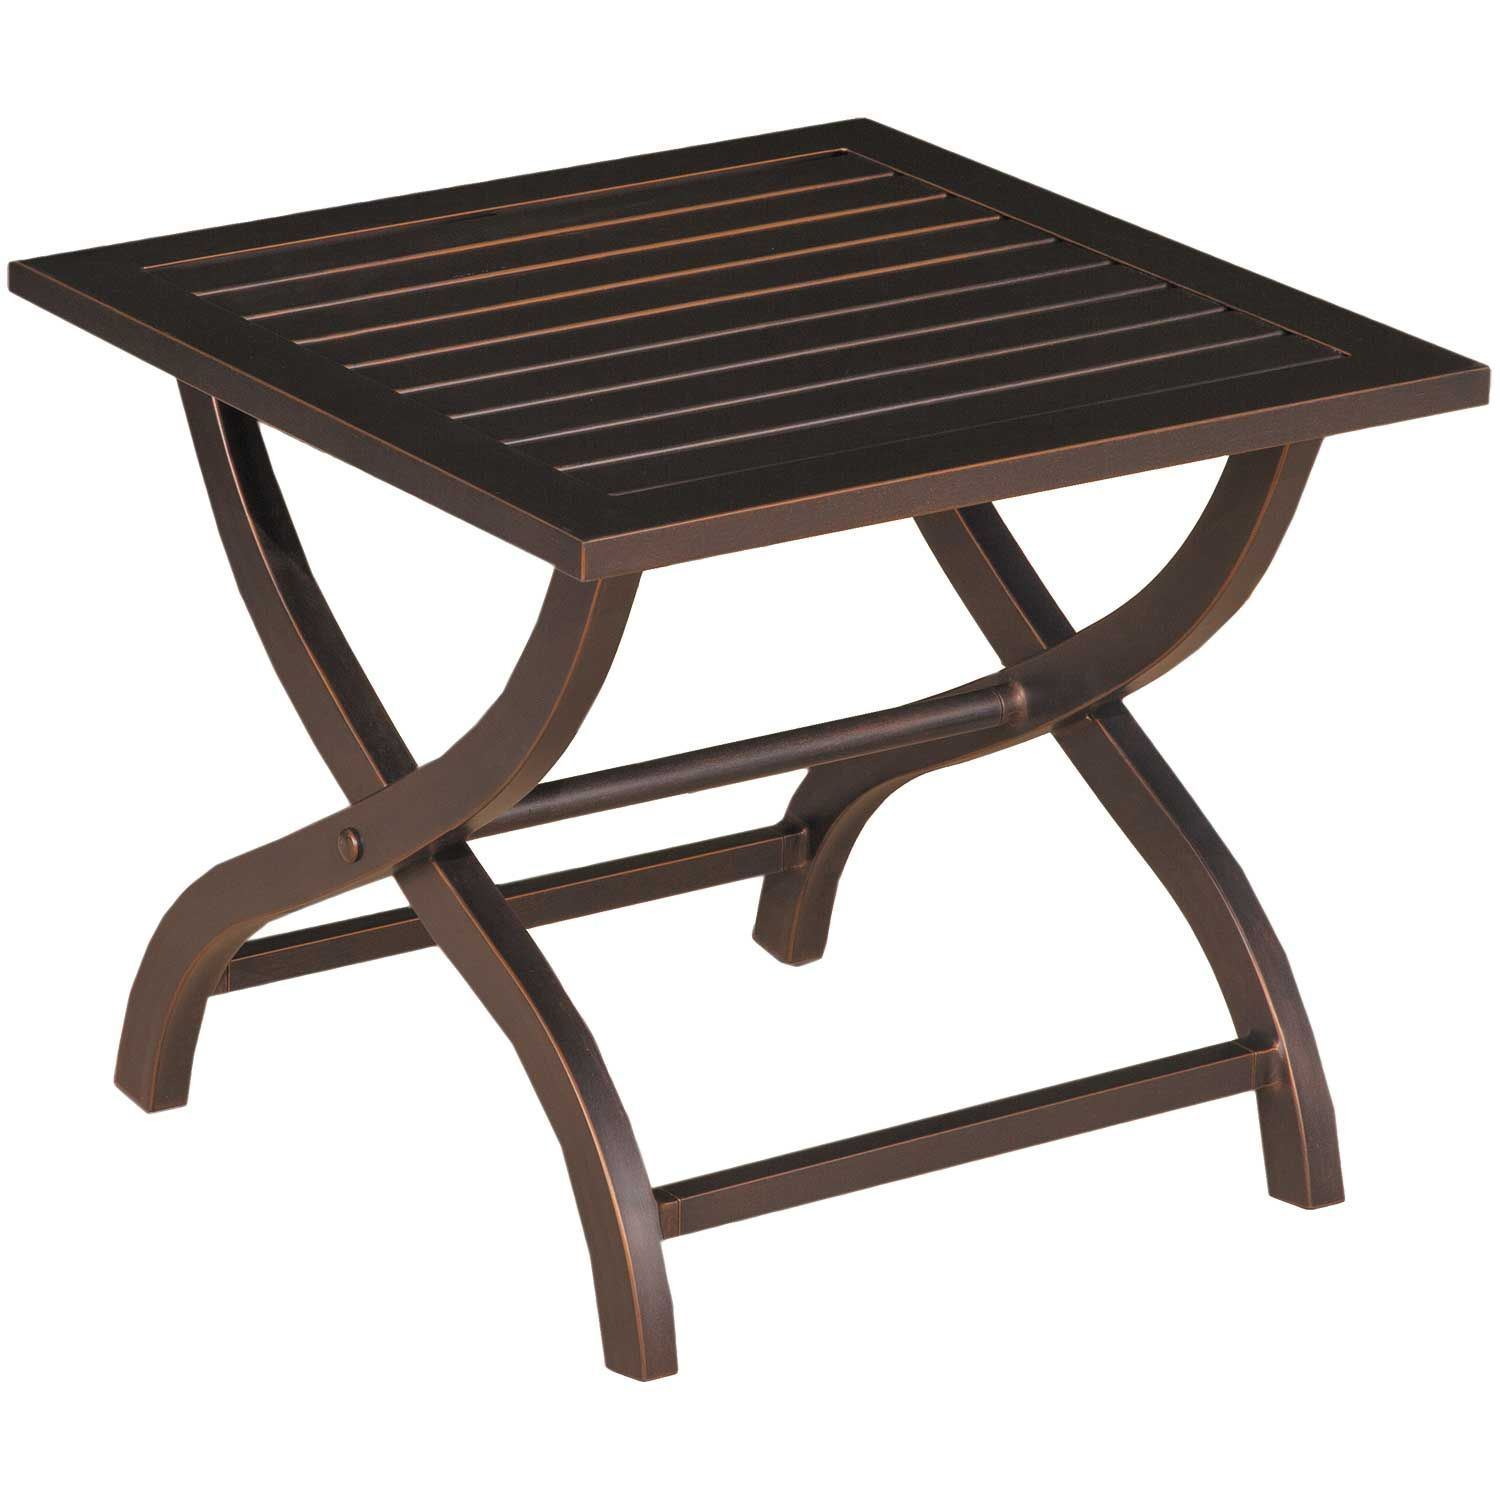 timber tables side concrete wooden cover restaurants umbrella and kwila dining outdoor end kmart small mimosa plastic settings bunnings table set diy chairs bar full size black